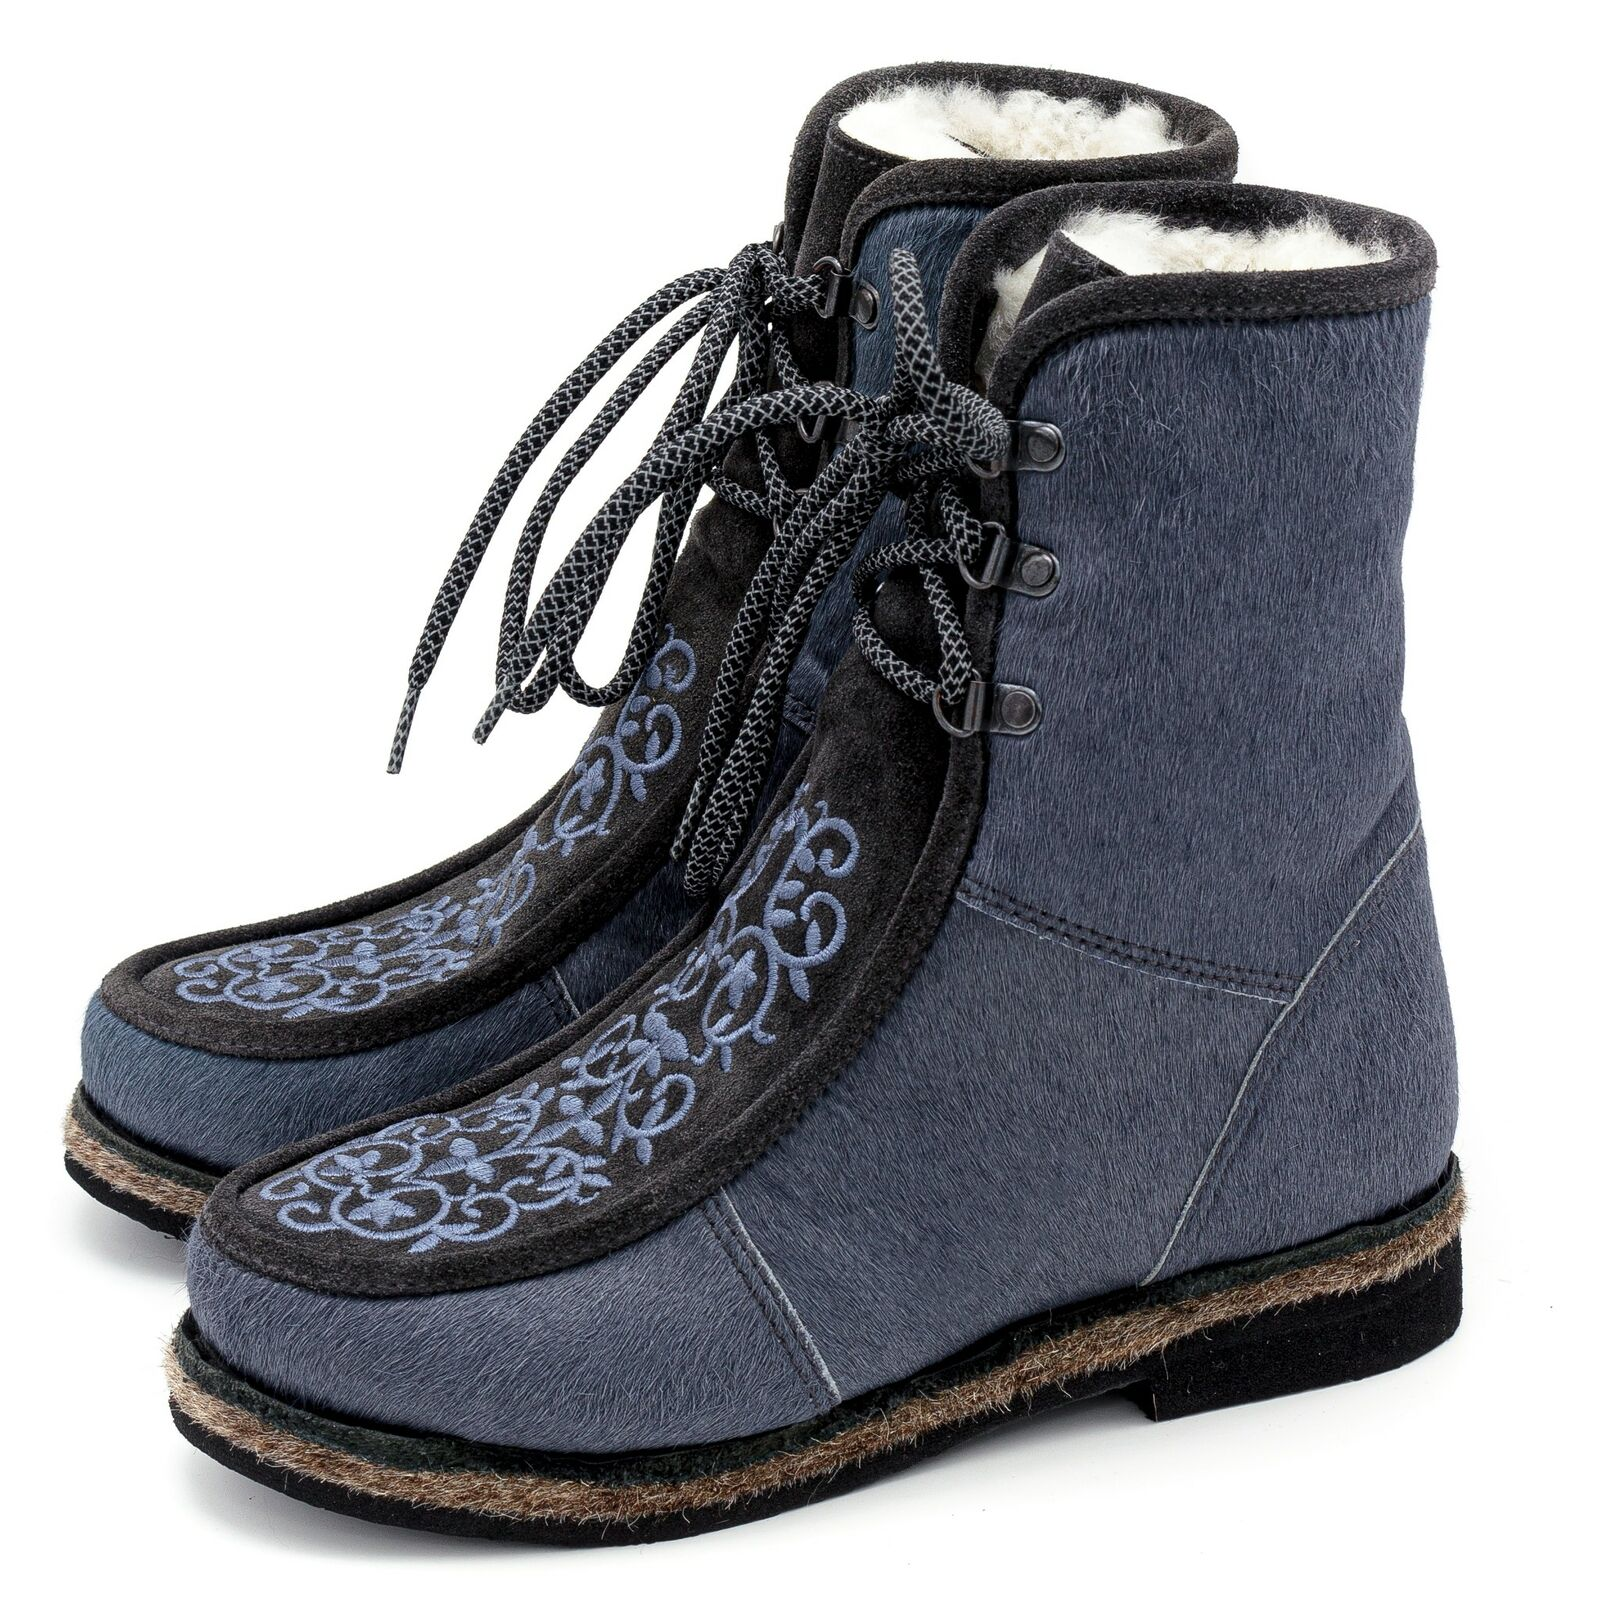 Fur Boots For Women Russian Style Unty Gray Embroidered With Suede Inserts